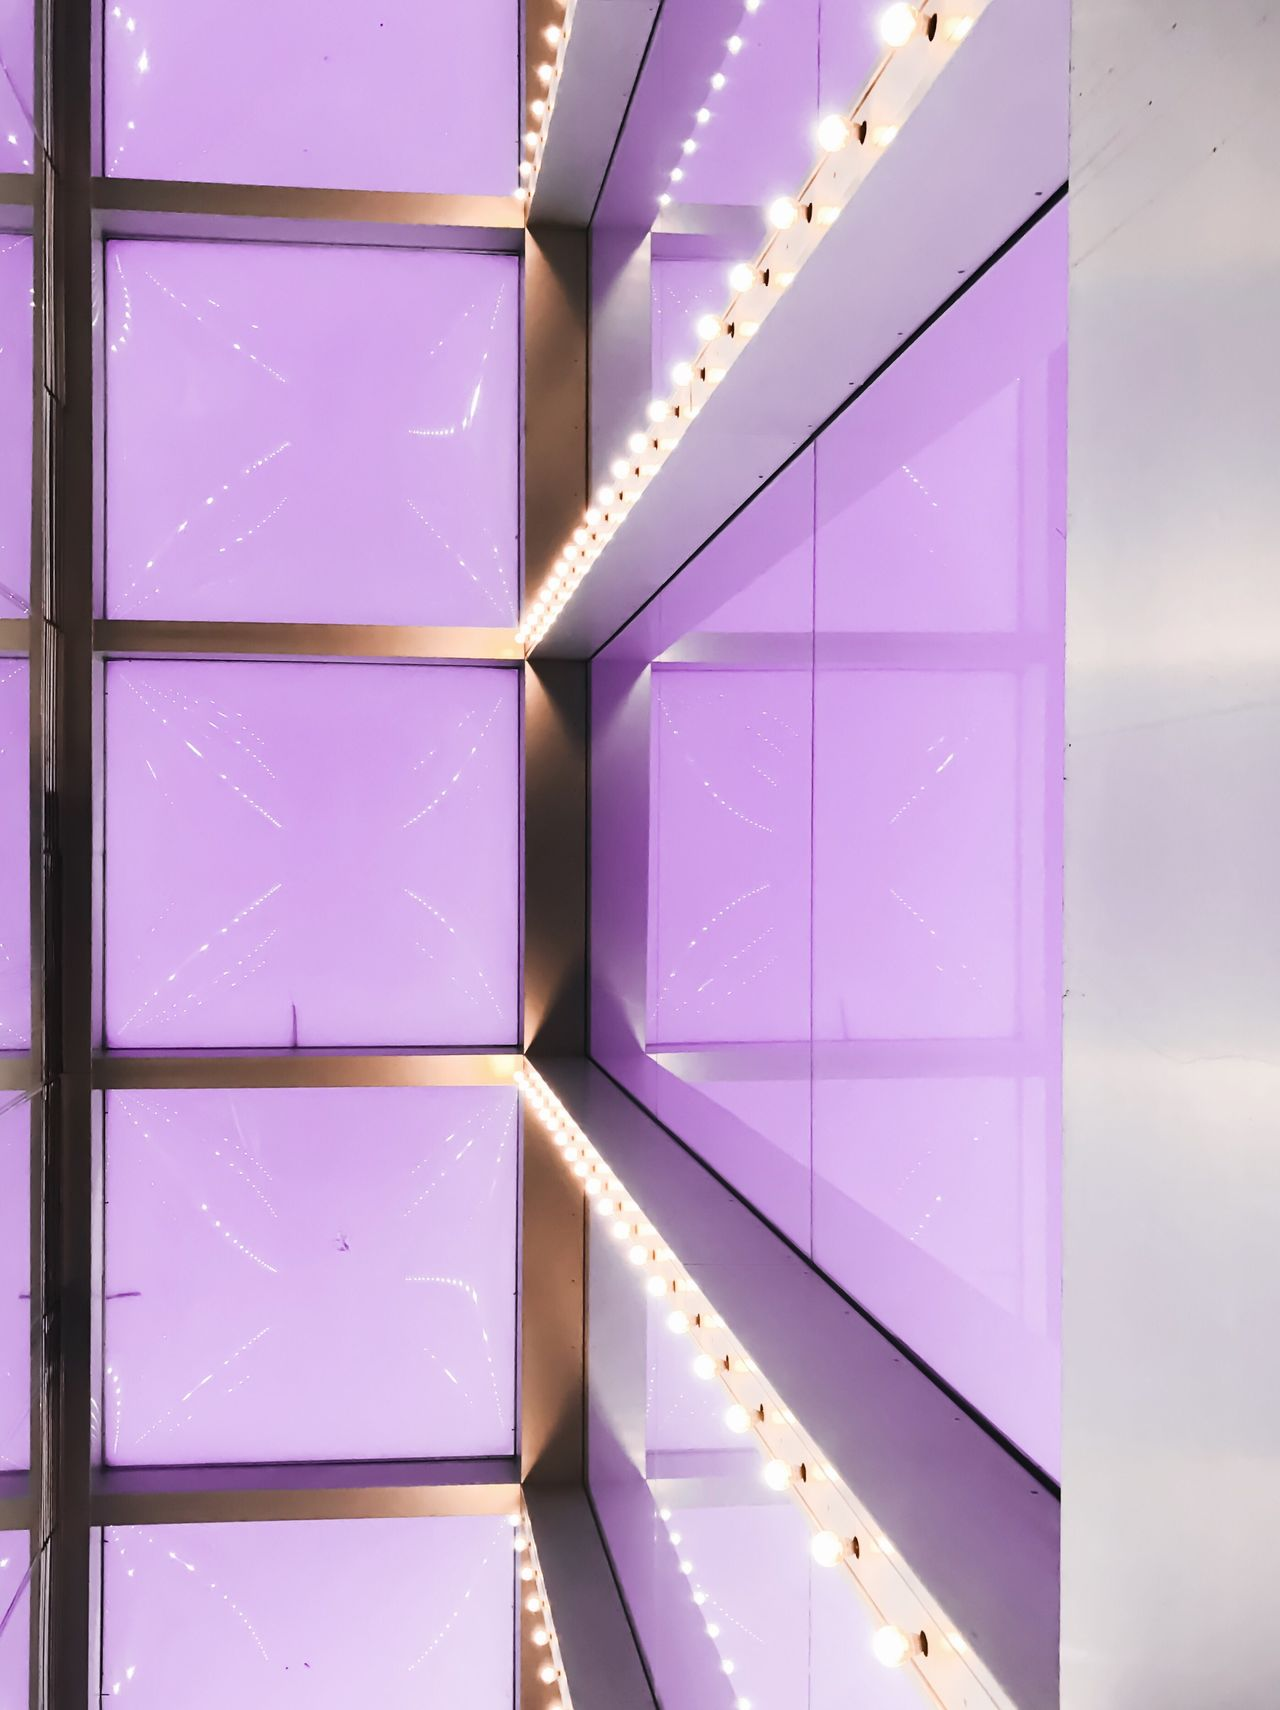 No People Full Frame Backgrounds Indoors  Close-up Day Purple Architecture